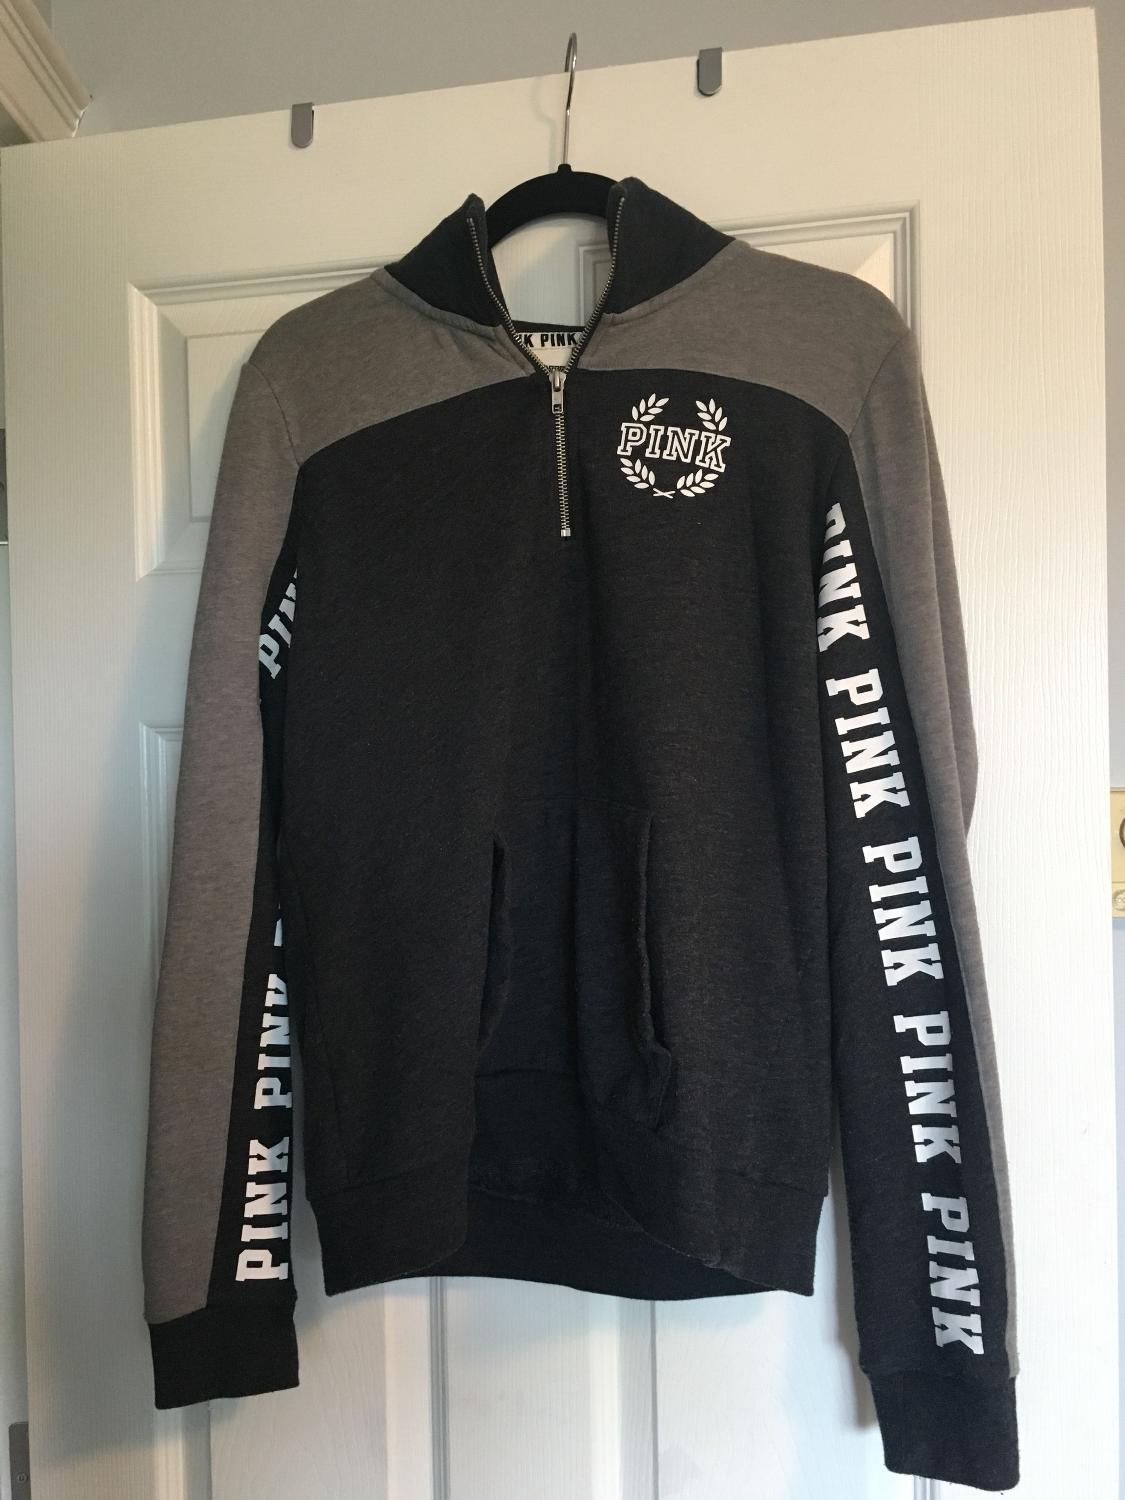 91349b7860eca Victoria Secret Half Zip Sweatshirt « Alzheimer's Network of Oregon